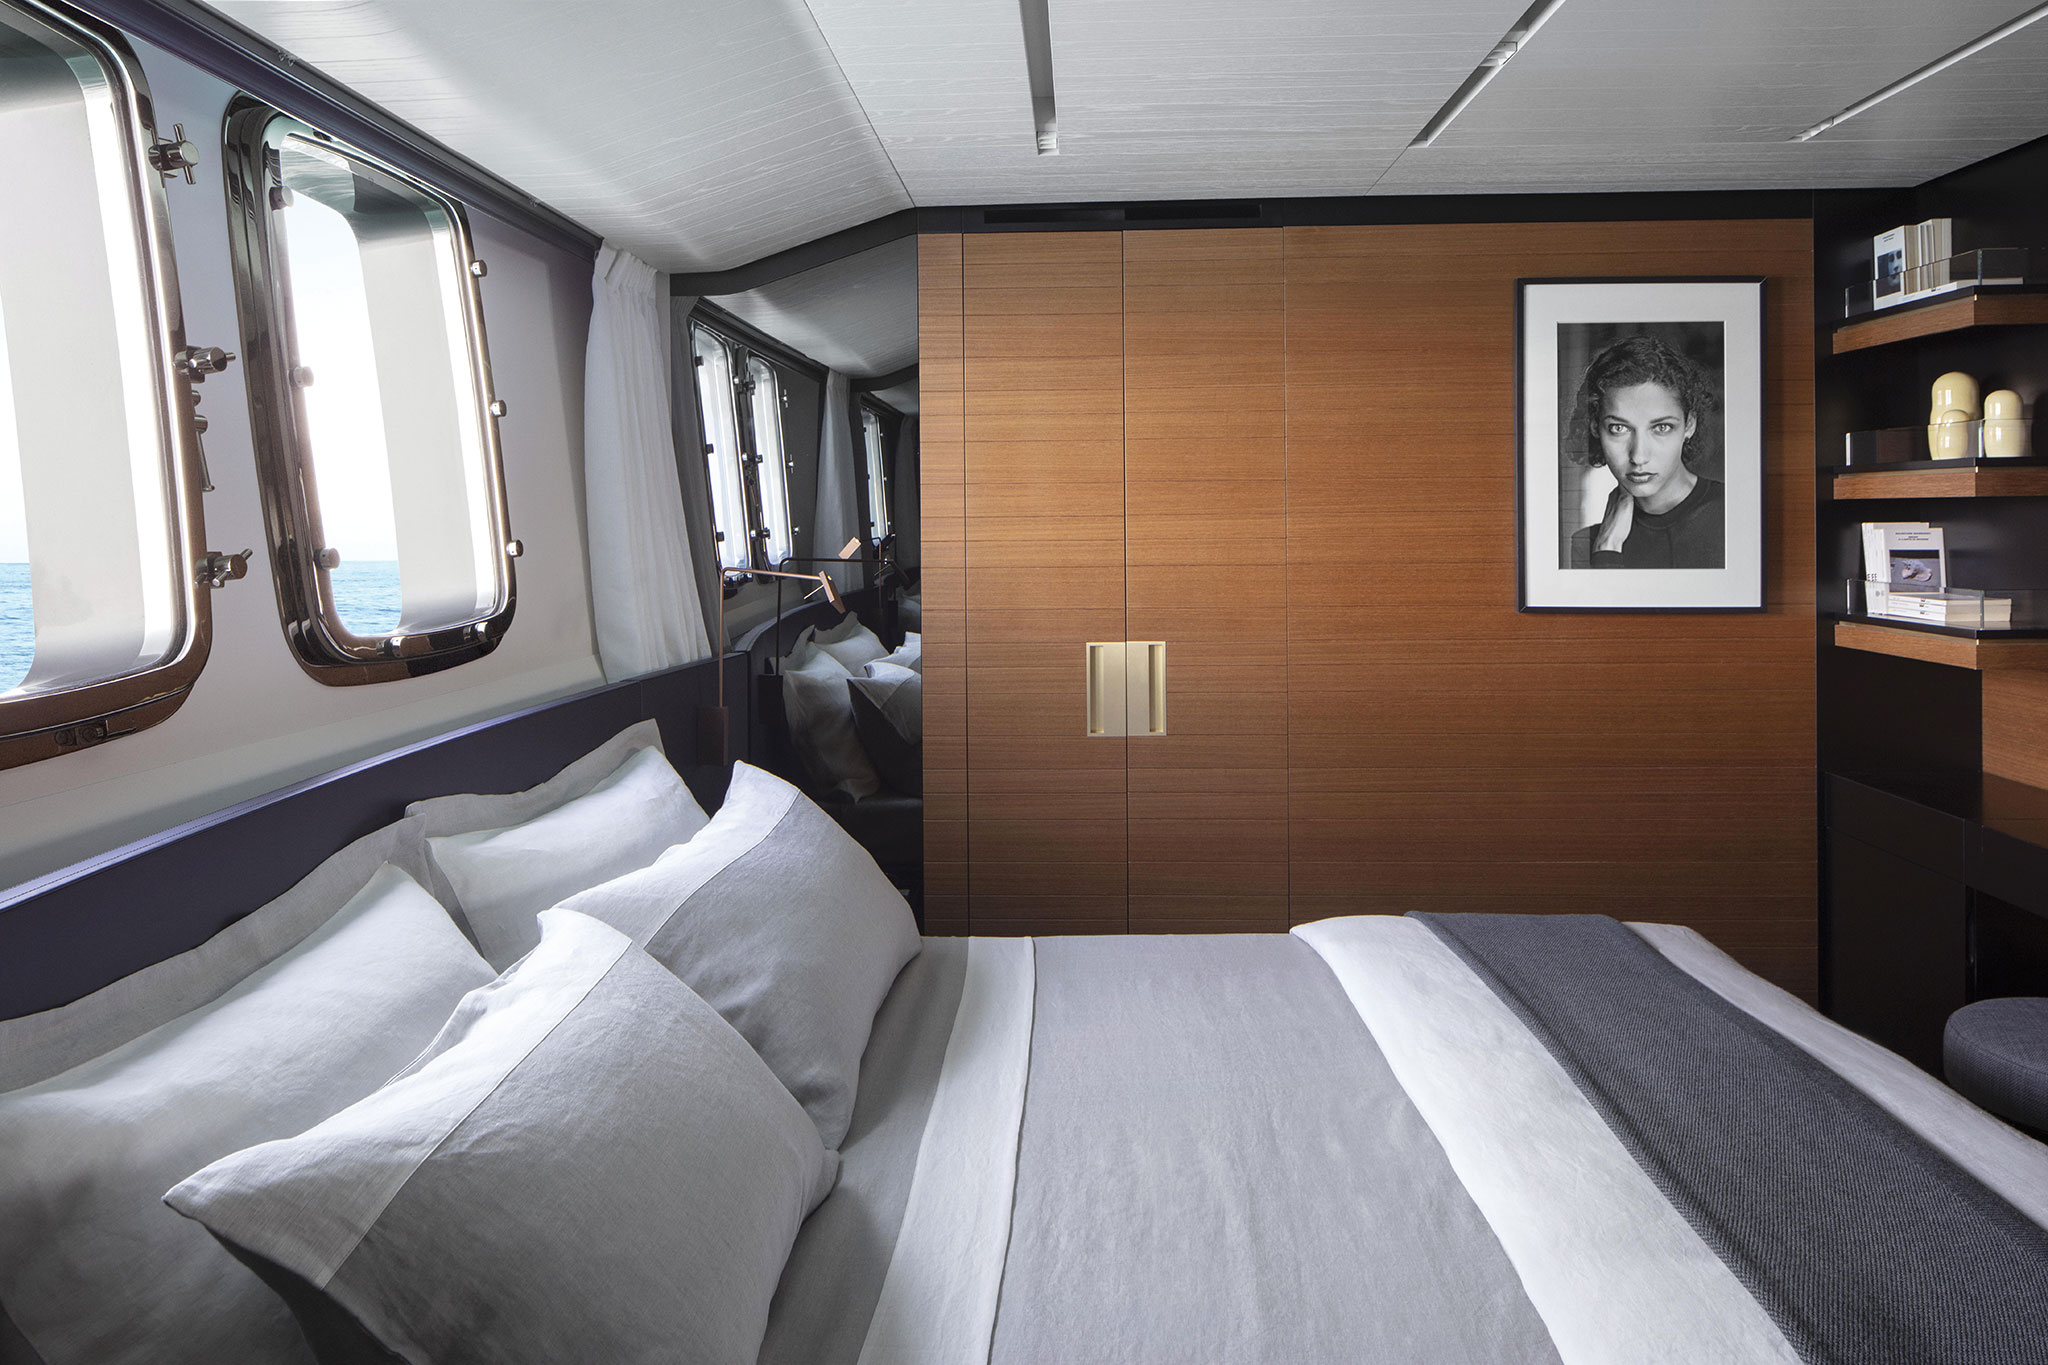 21-Sanlorenzo-SL102-lower-deck-bow-vip-room-photo-Fernando-Lombardi-yachts-france-171